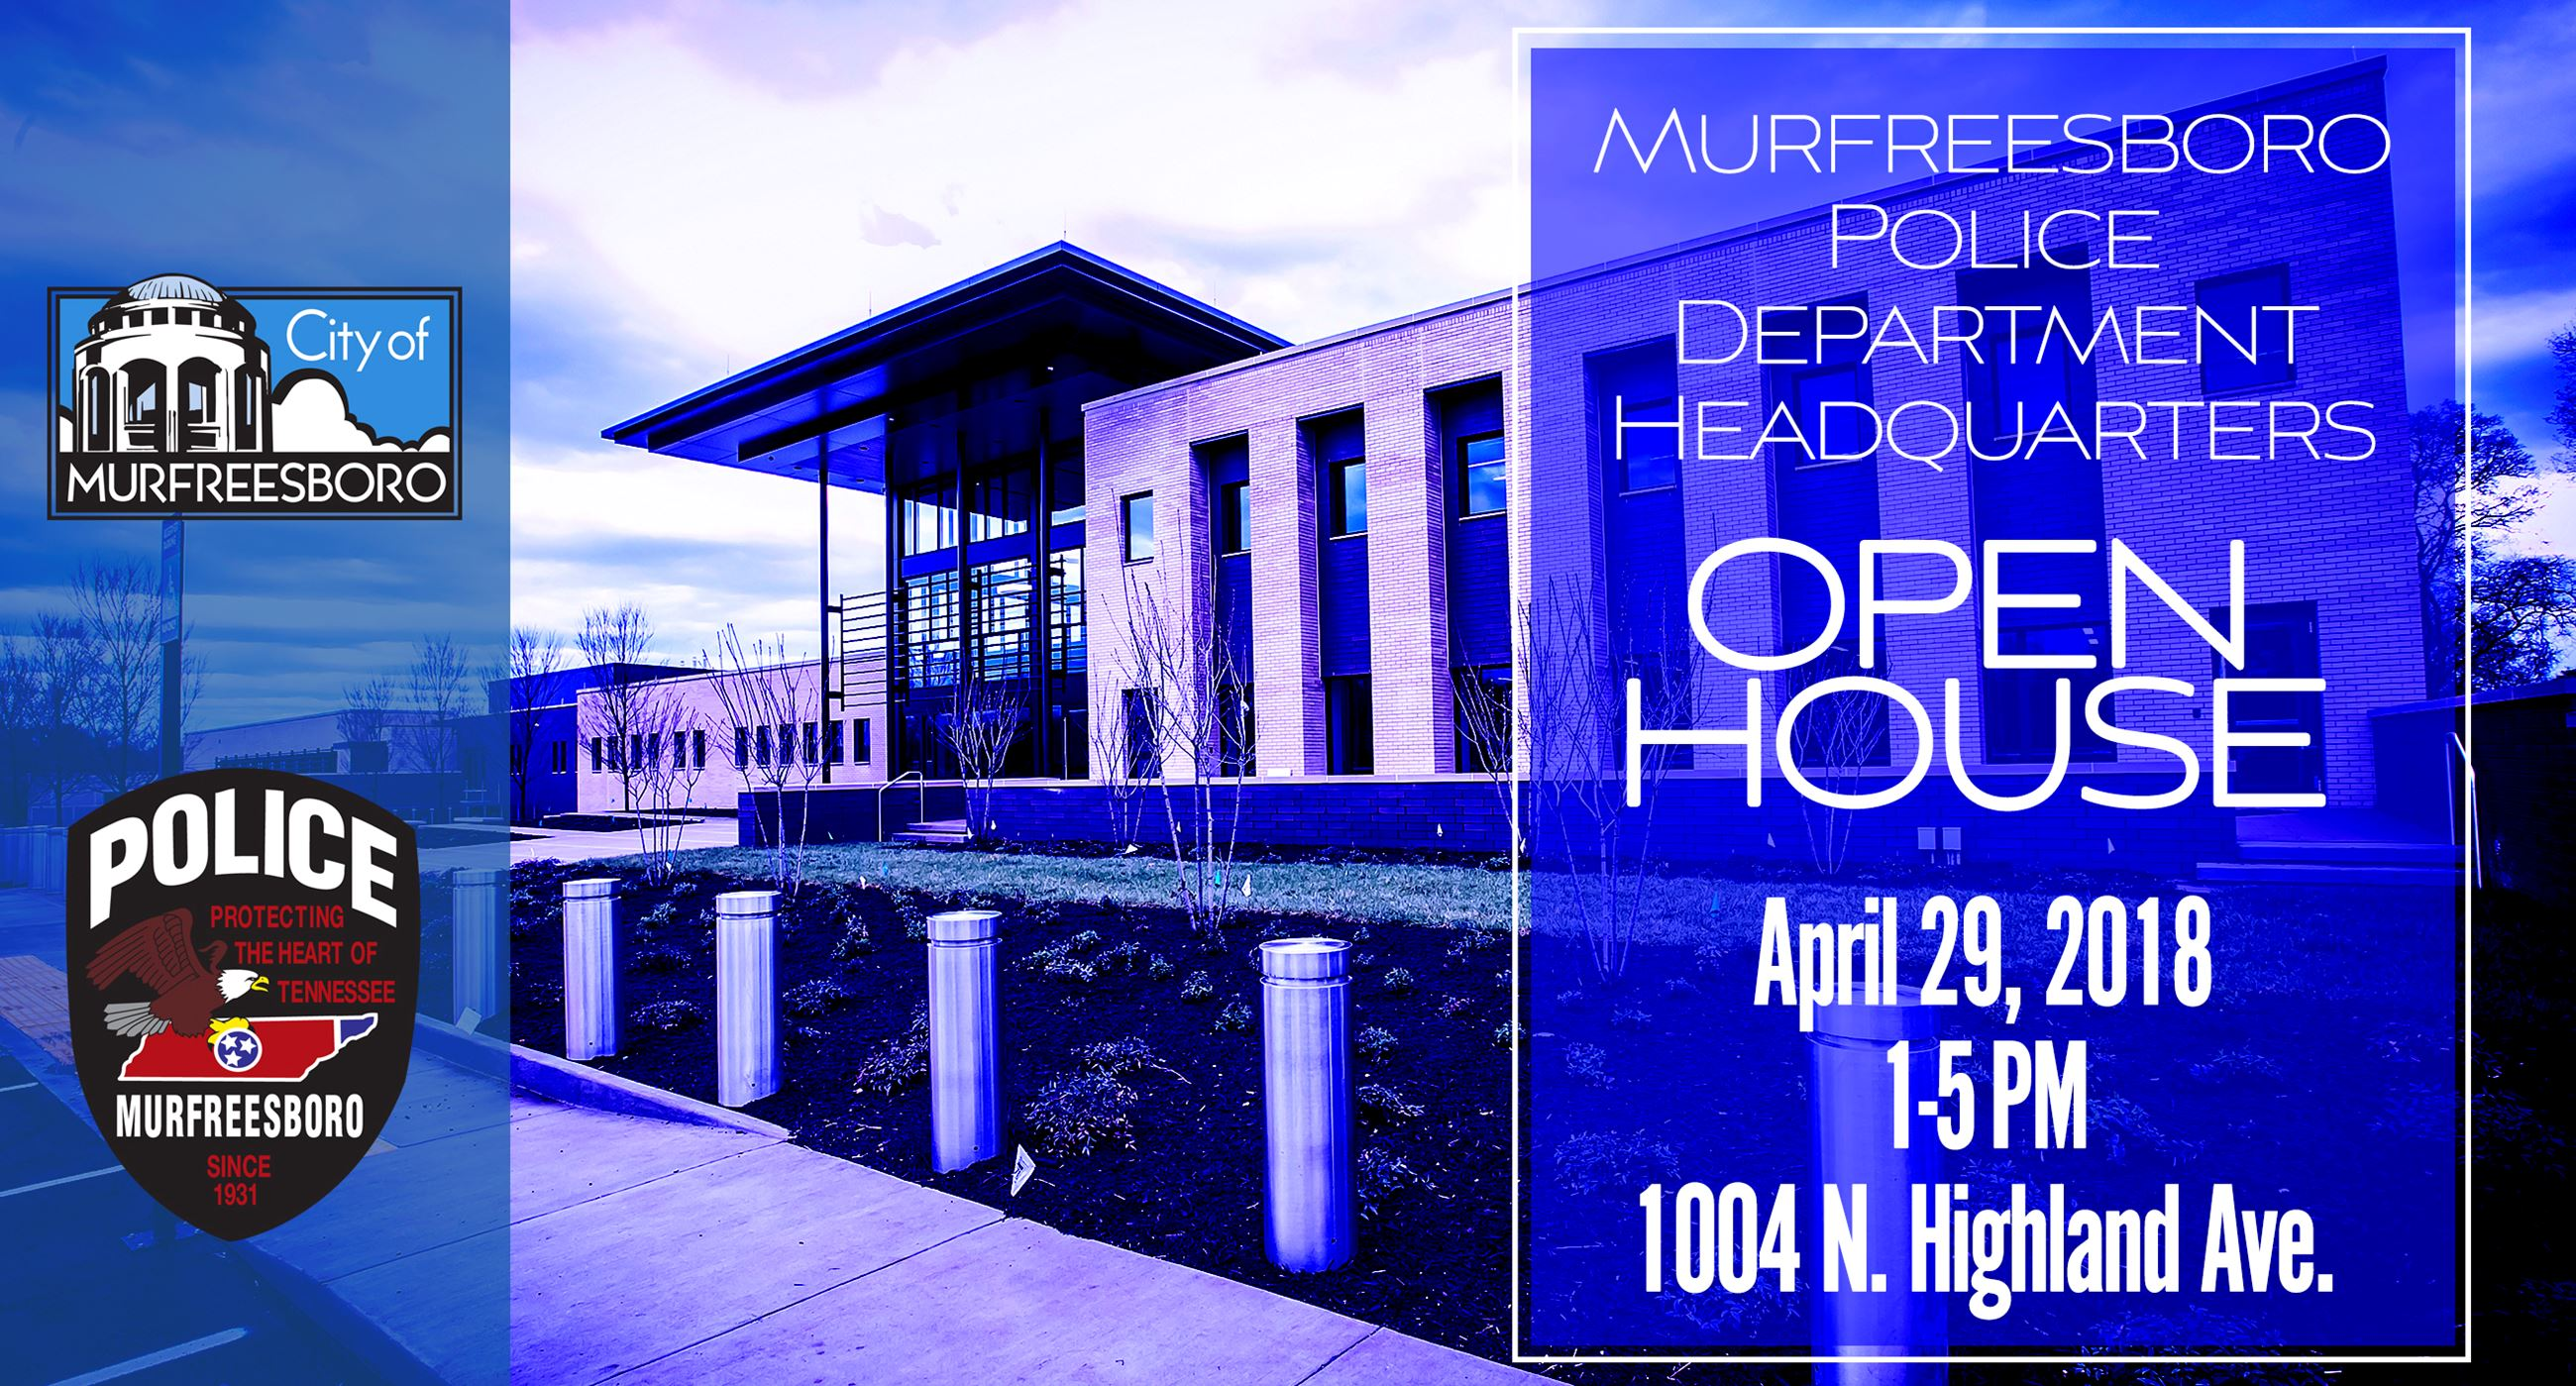 MPD Open House Mock-Up Invitation 1-5